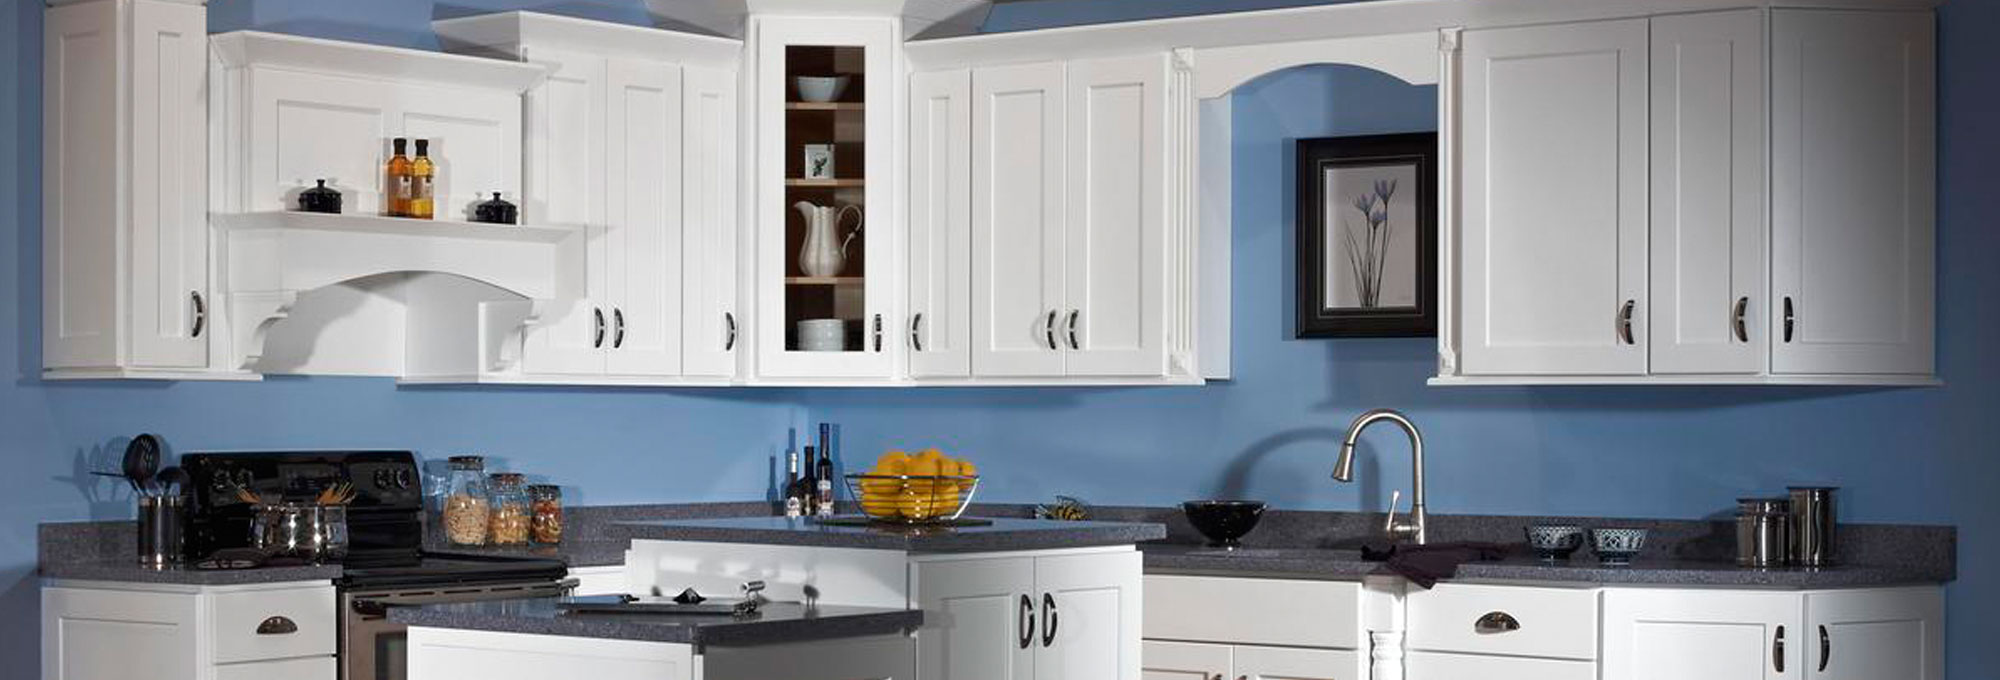 Accent Kitchens, LLC | Burlington, CT | Home